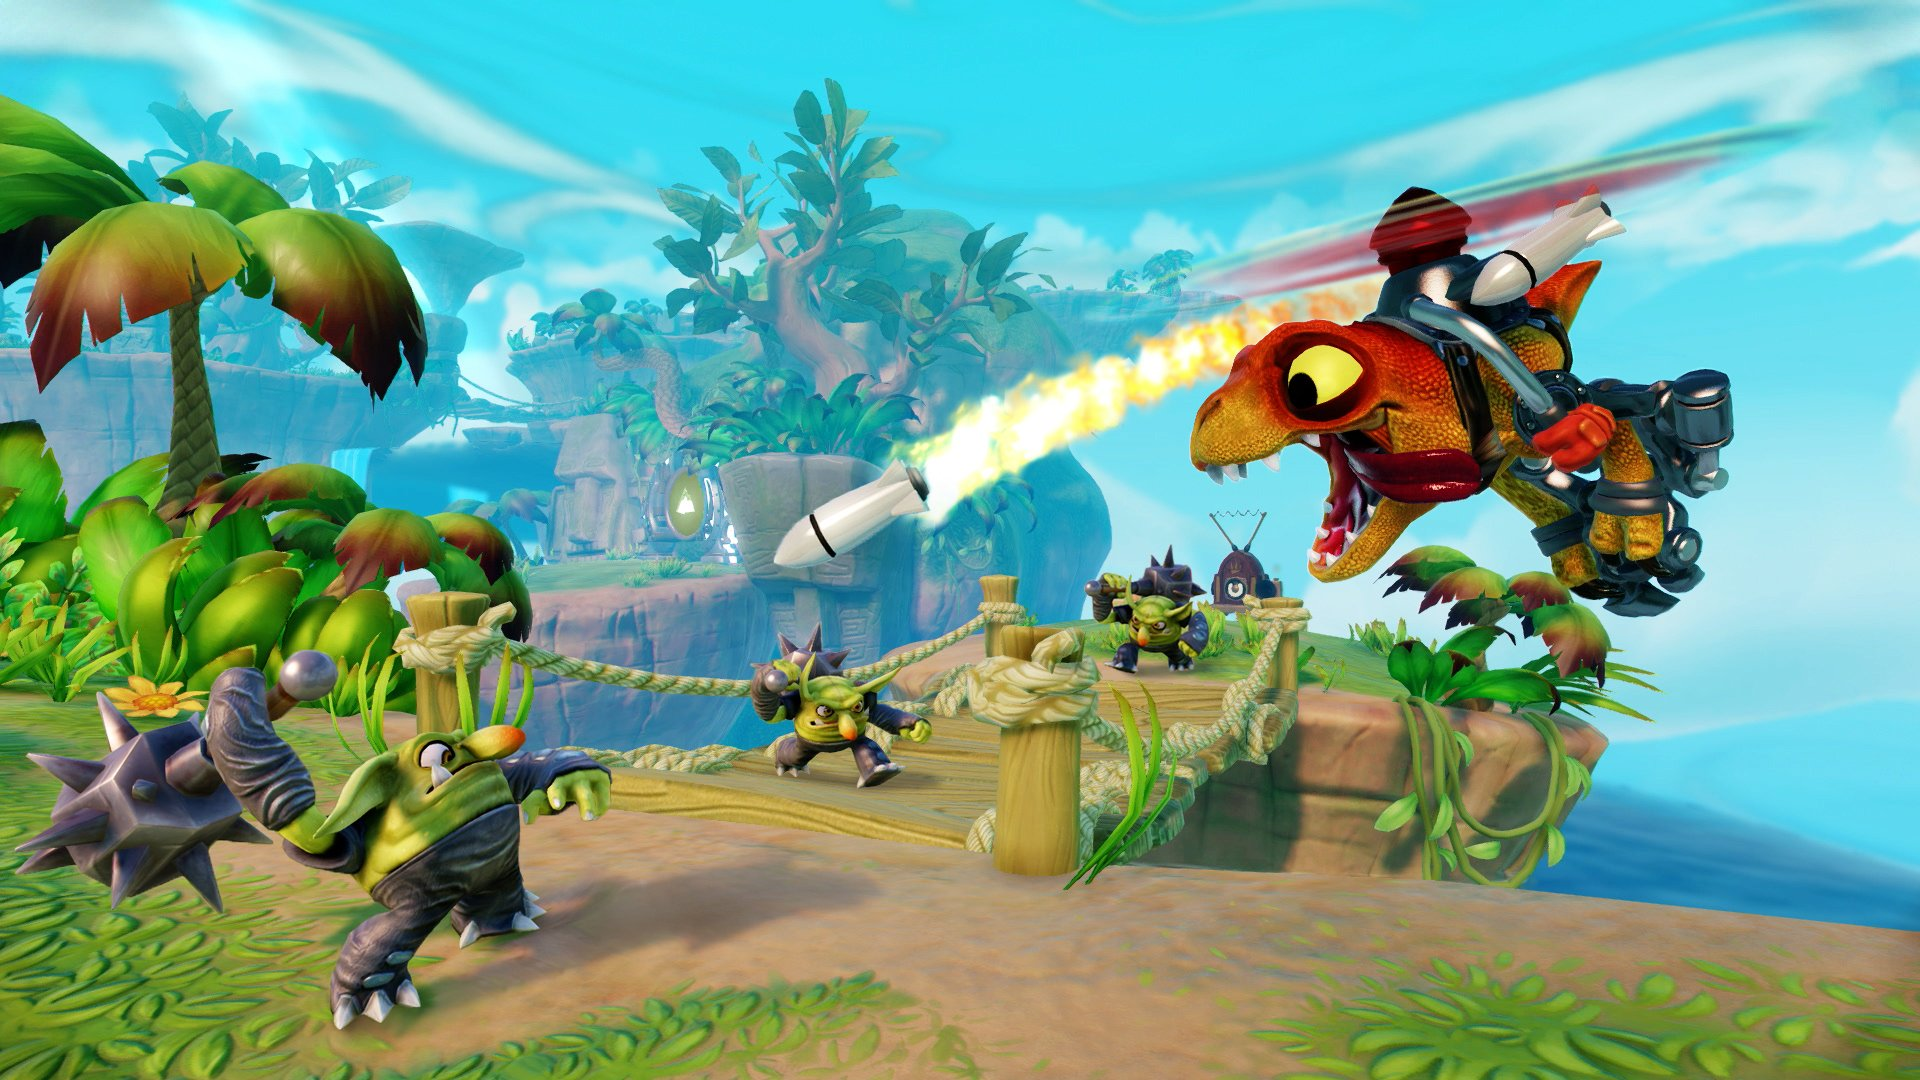 Image result for E3 2013 - Skylanders SWAP Force (Multi-Platform) - Logo, Wii U Box Art, Screenshot, & Figure Image